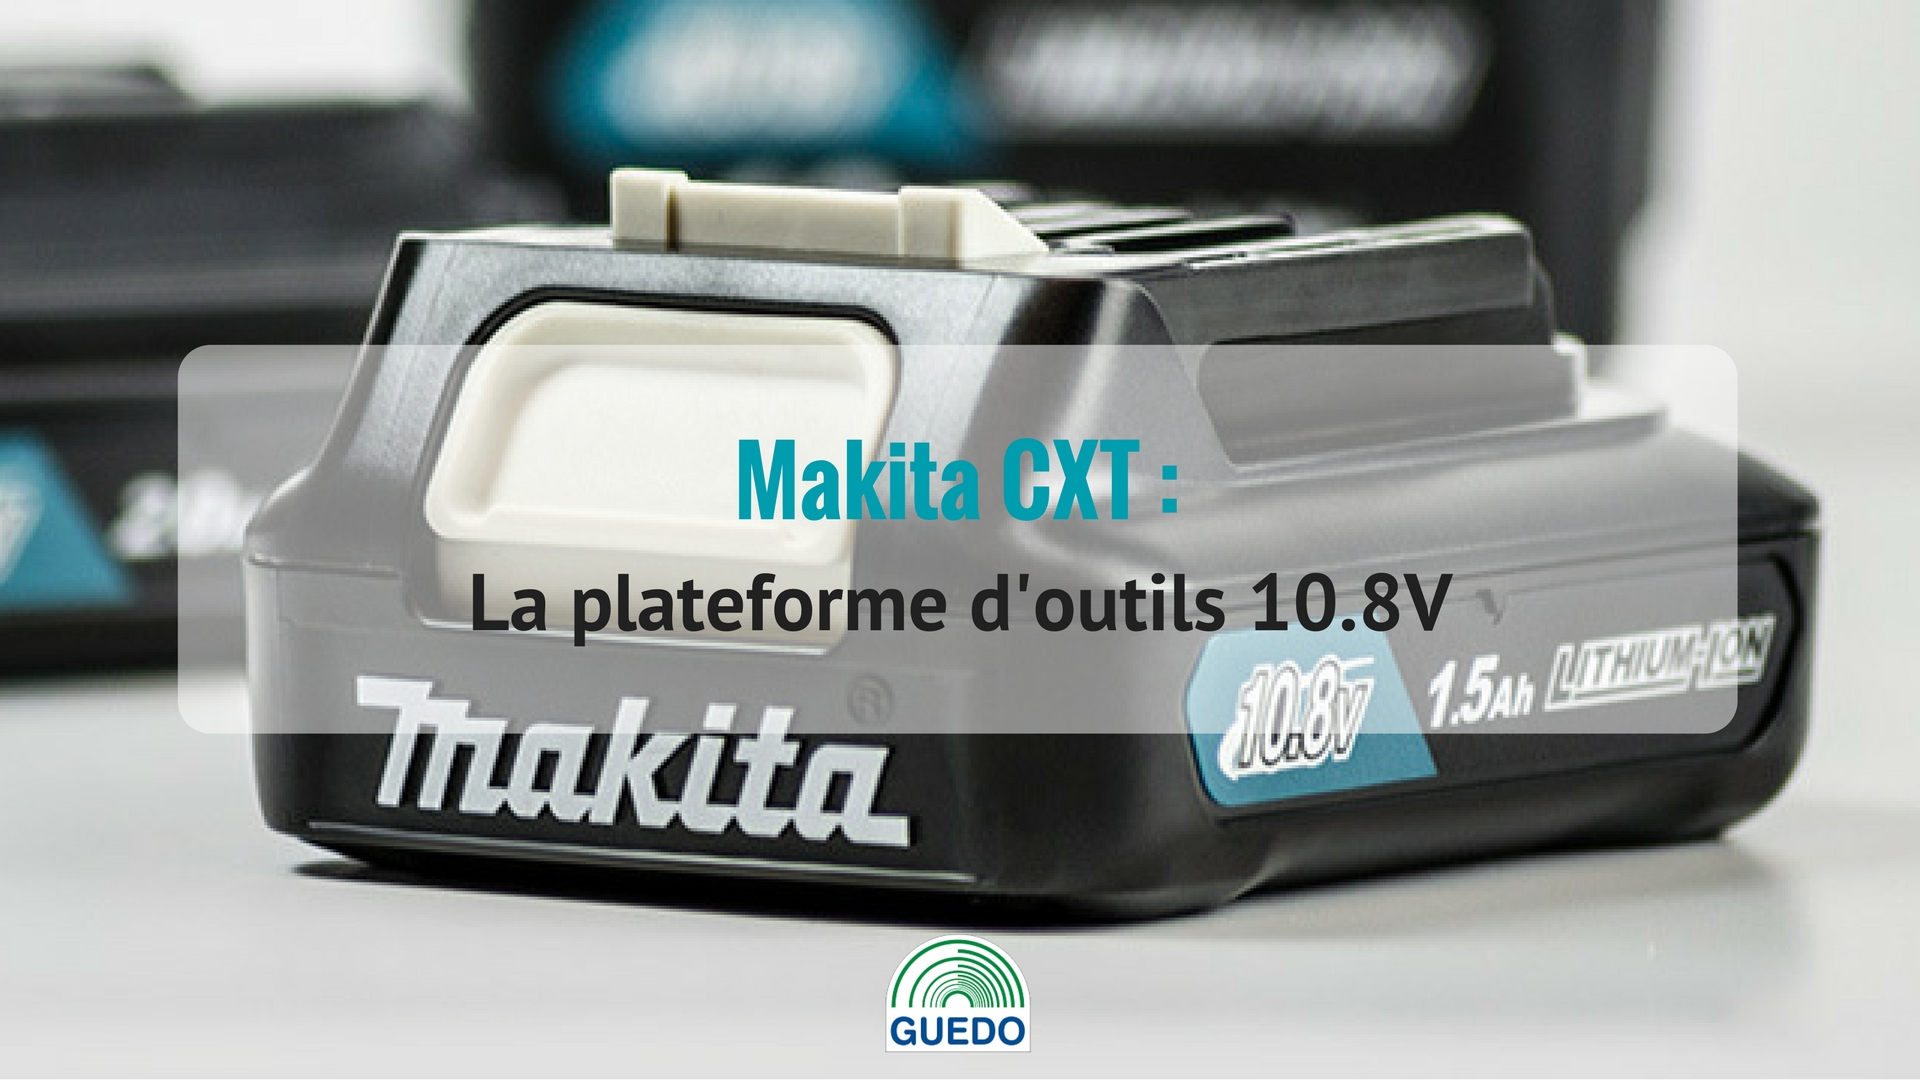 PLaterforme d'outils 10.8V Makita